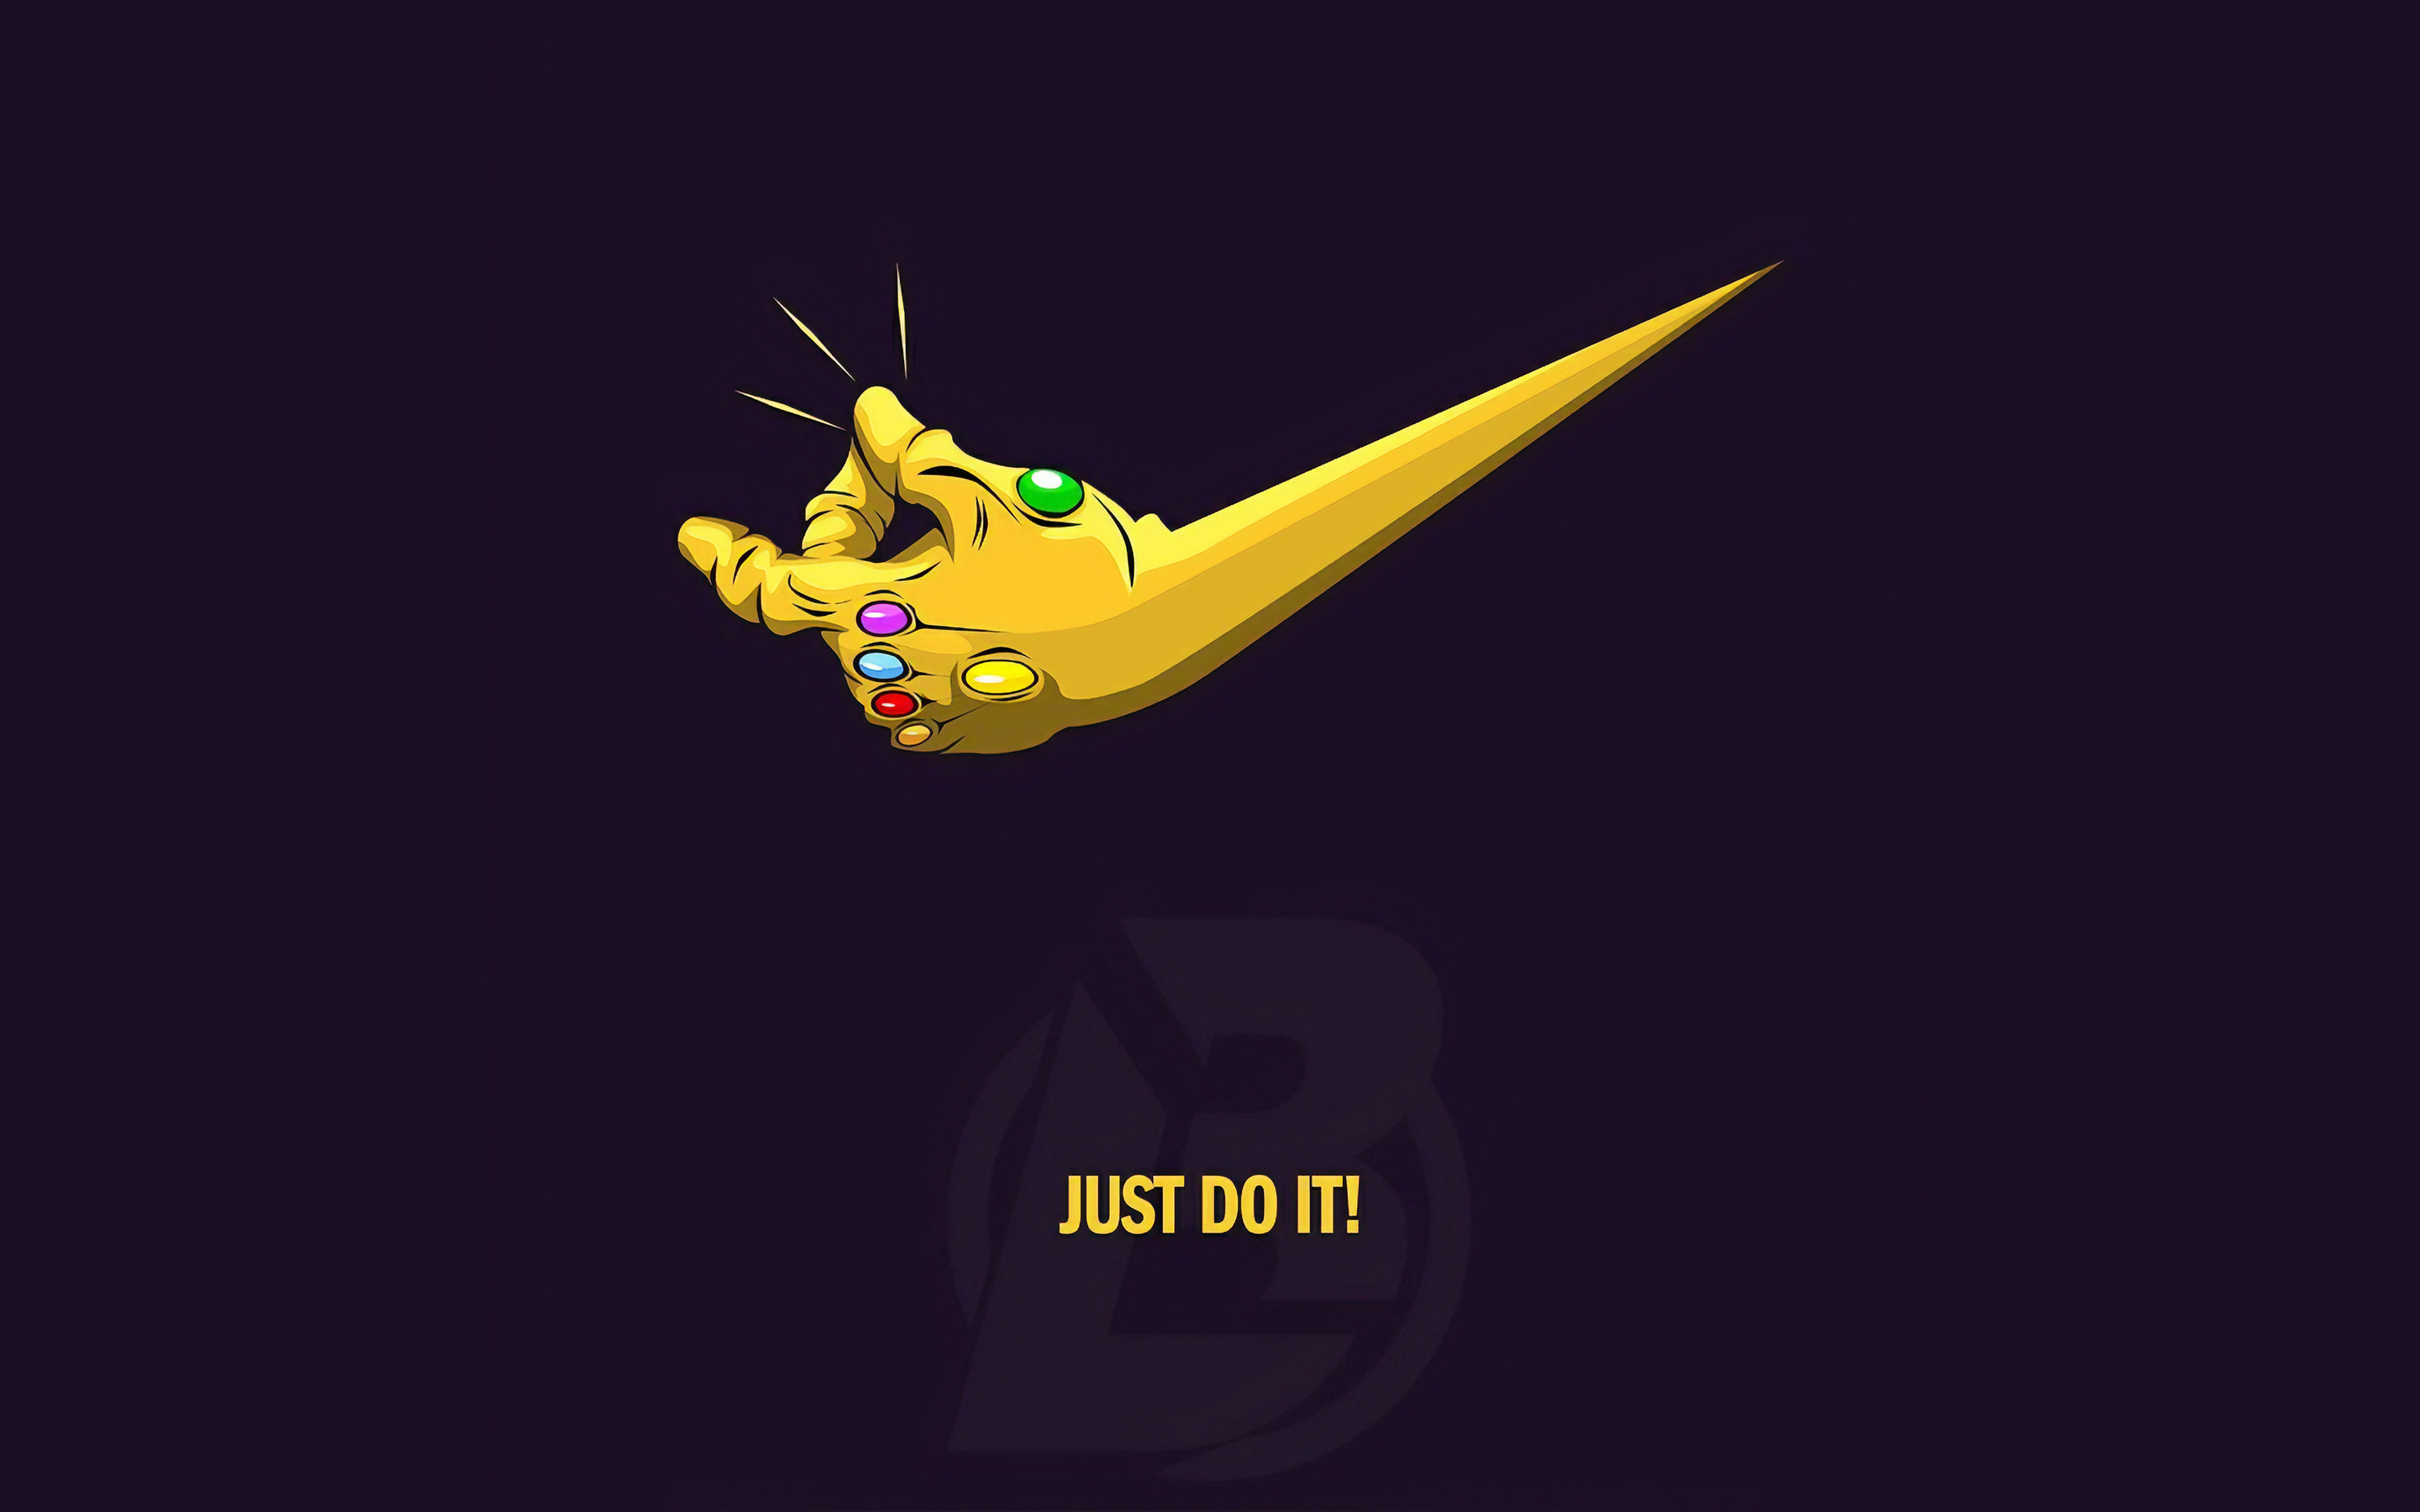 2880x1800 Just Do It Thanos 4k Macbook Pro Retina Hd 4k Wallpapers Images Backgrounds Photos And Pictures